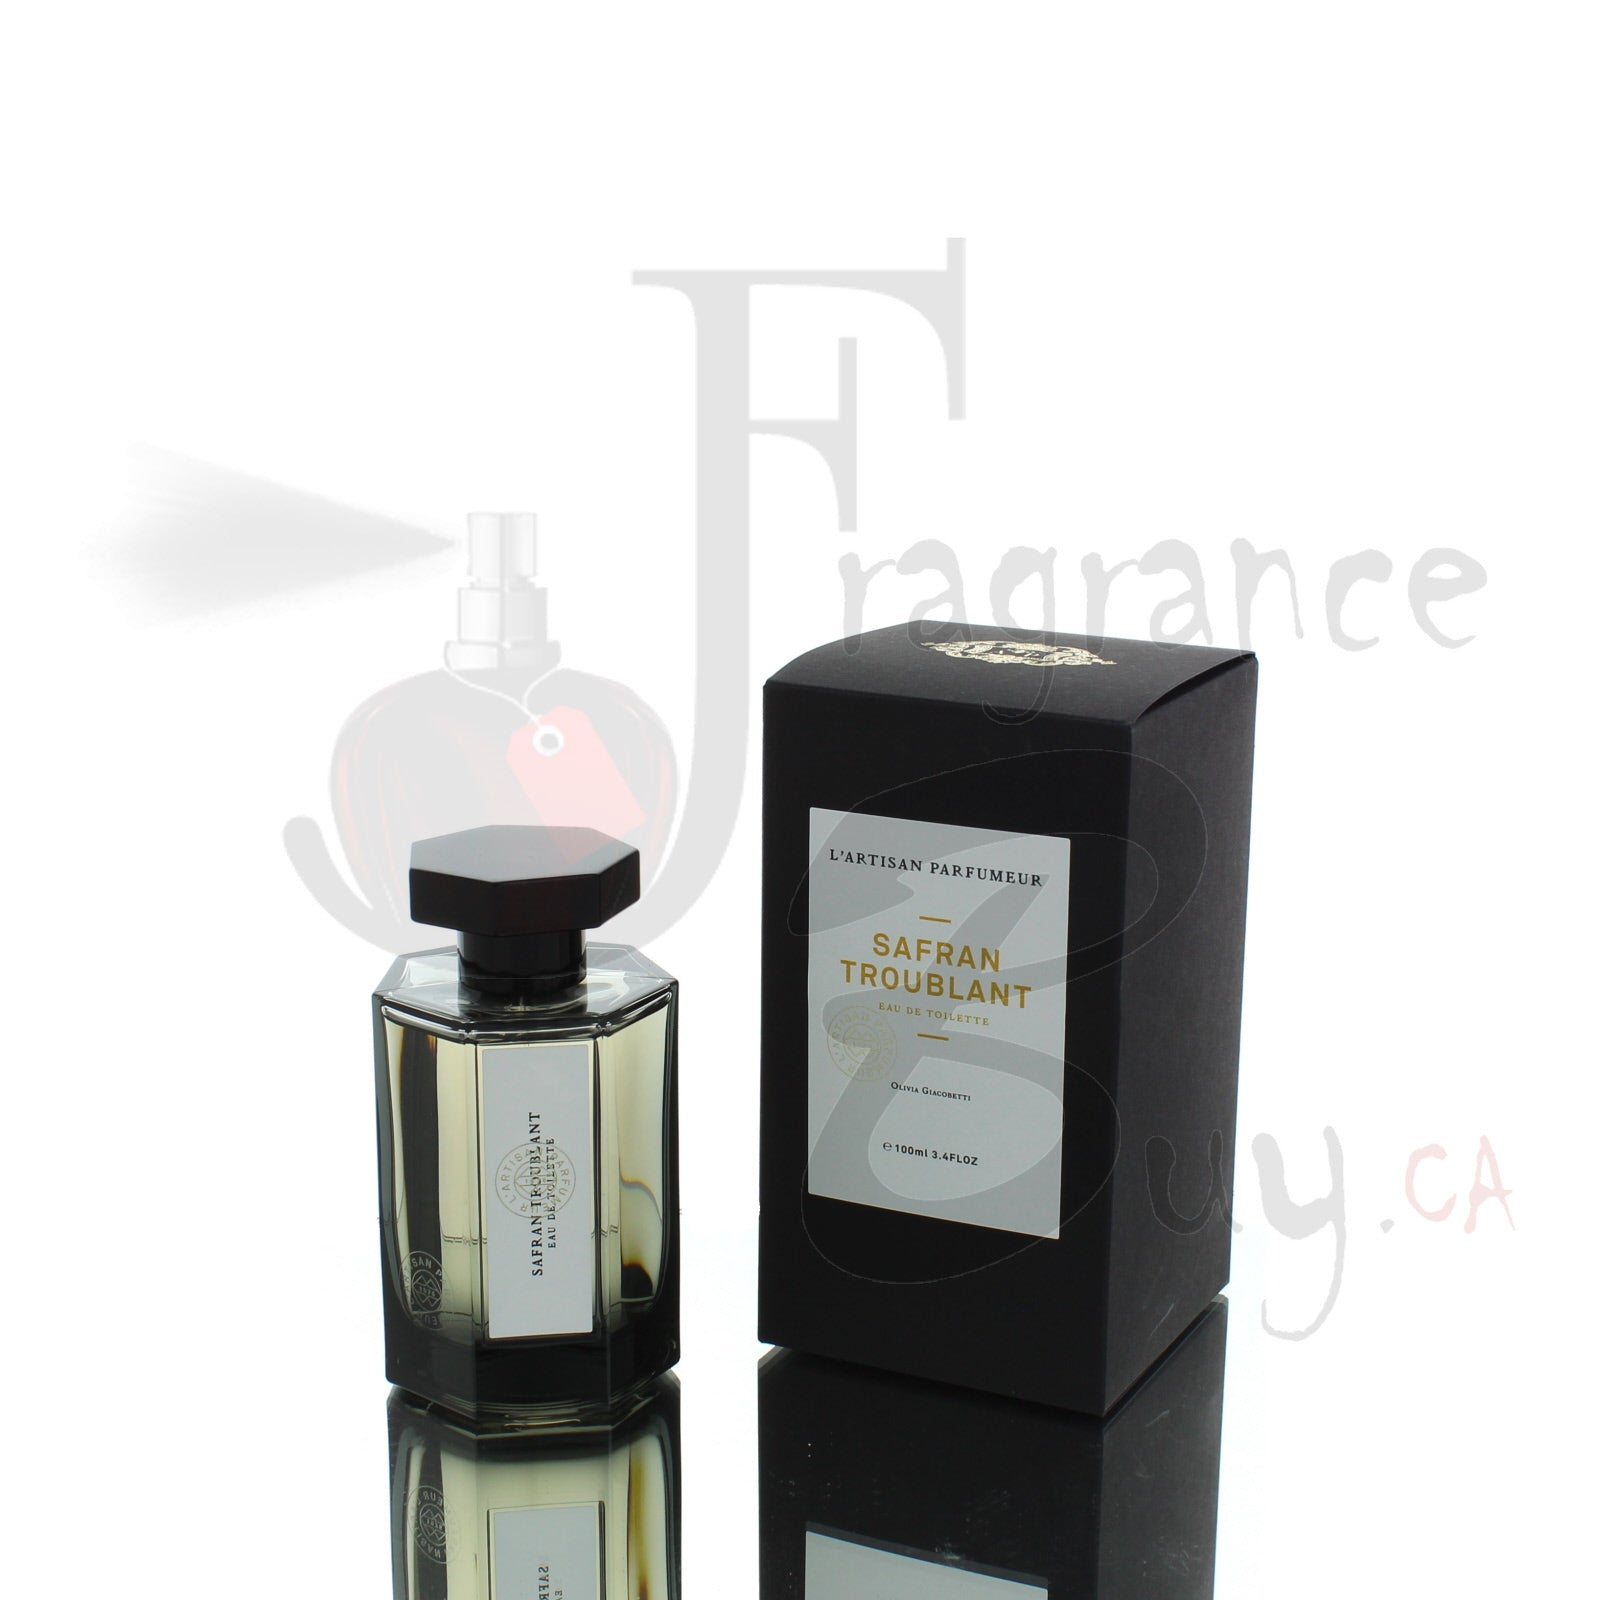 Safran Troublant L'Artisan Parfumeur For Man/Woman